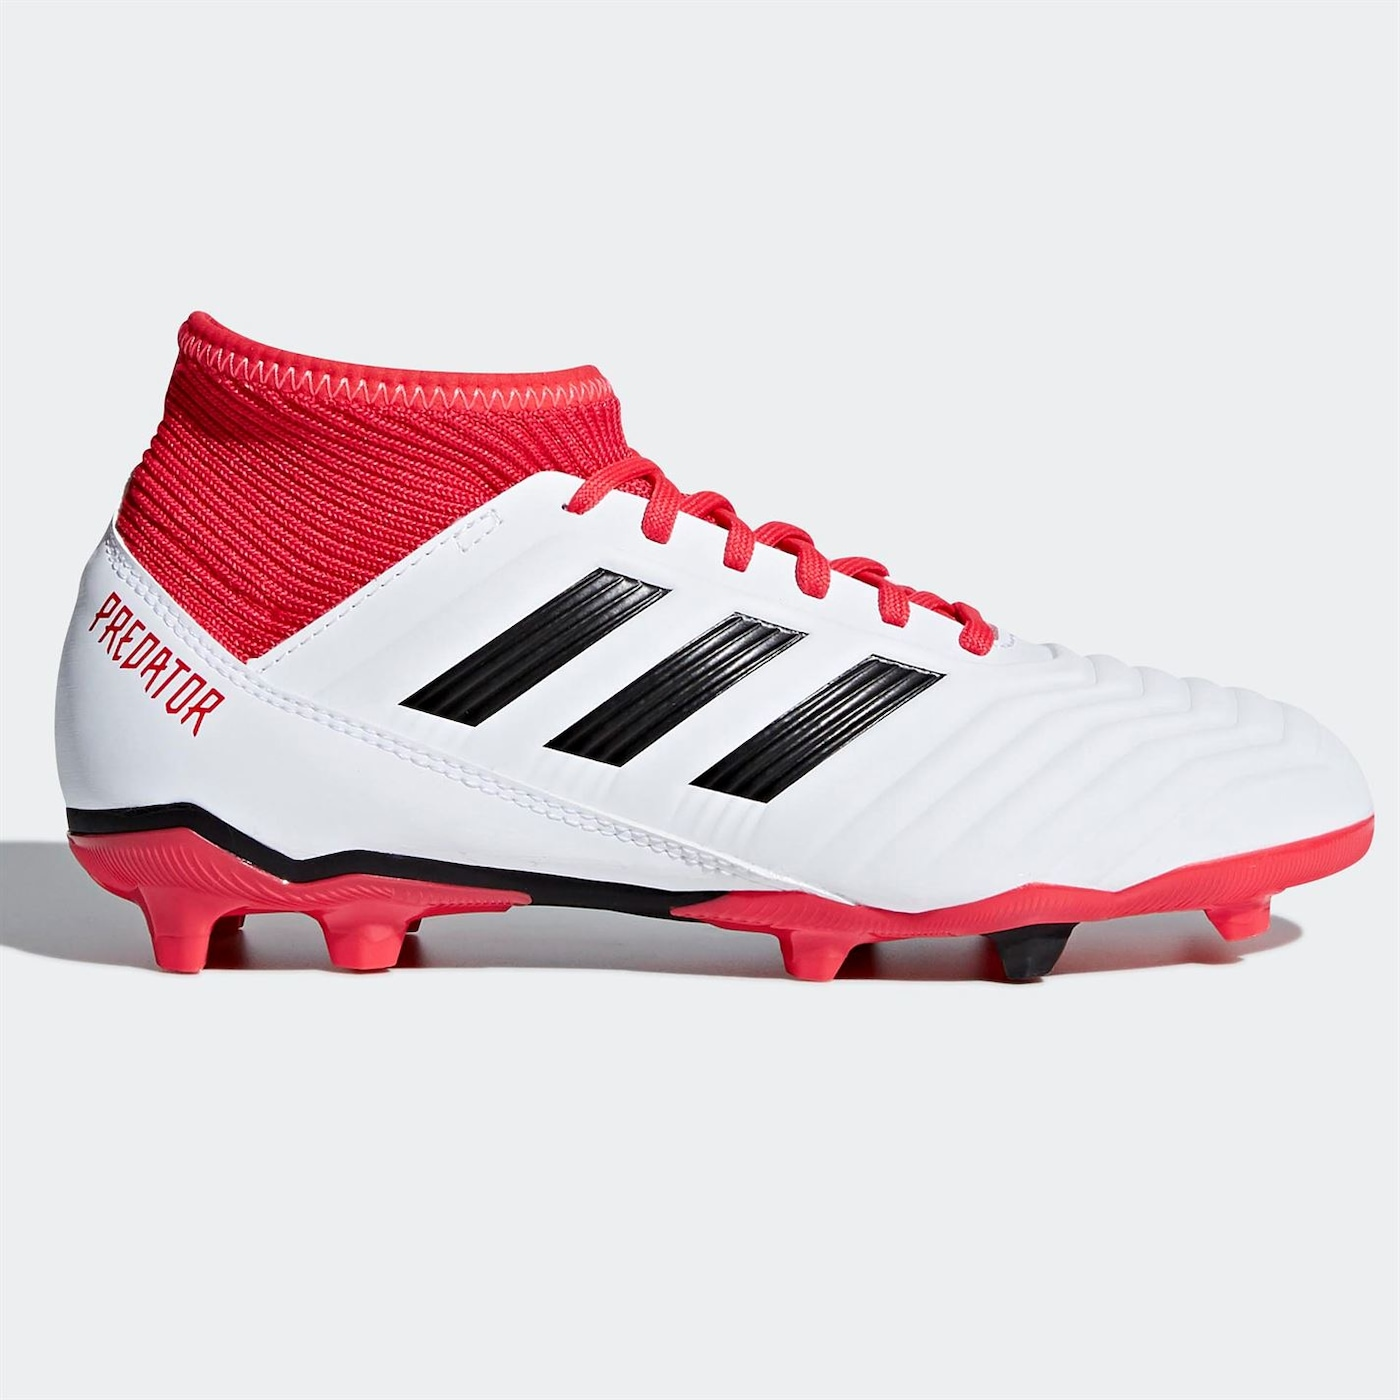 adidas Predator 18.3 Junior FG Football Boots